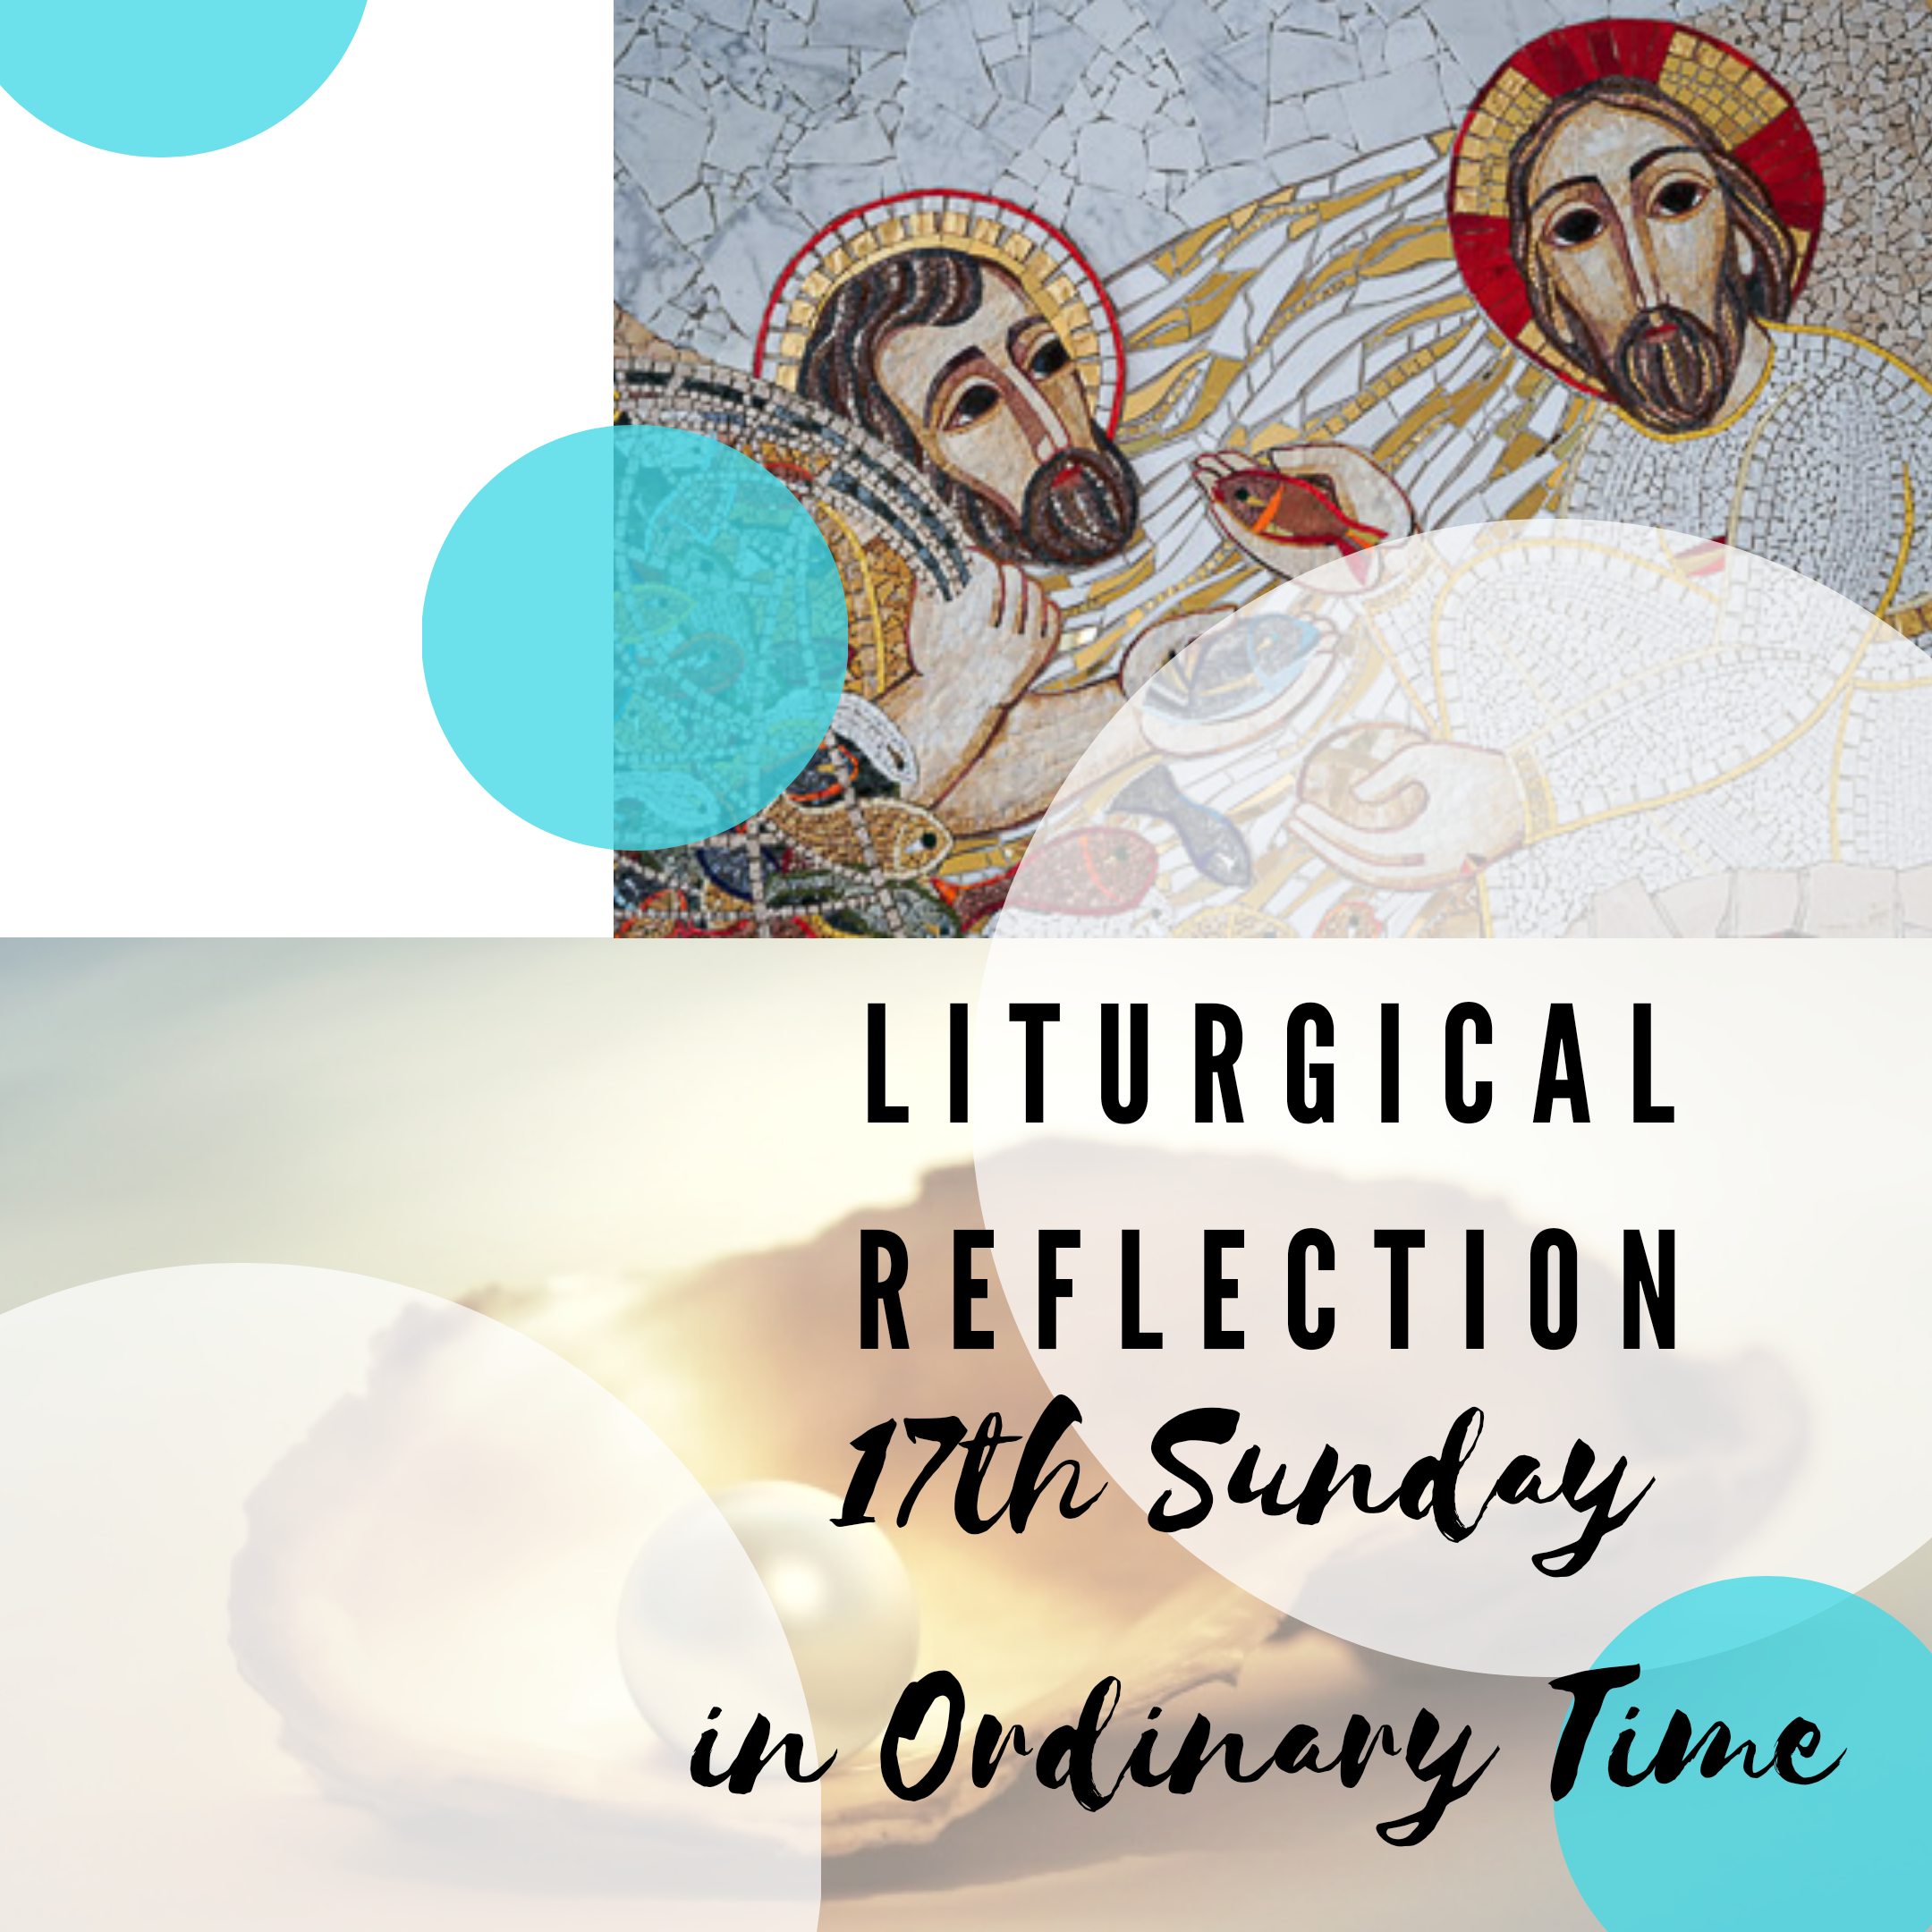 Liturgical Reflection for 17th Sunday in Ordinary Time (26 July 2020)